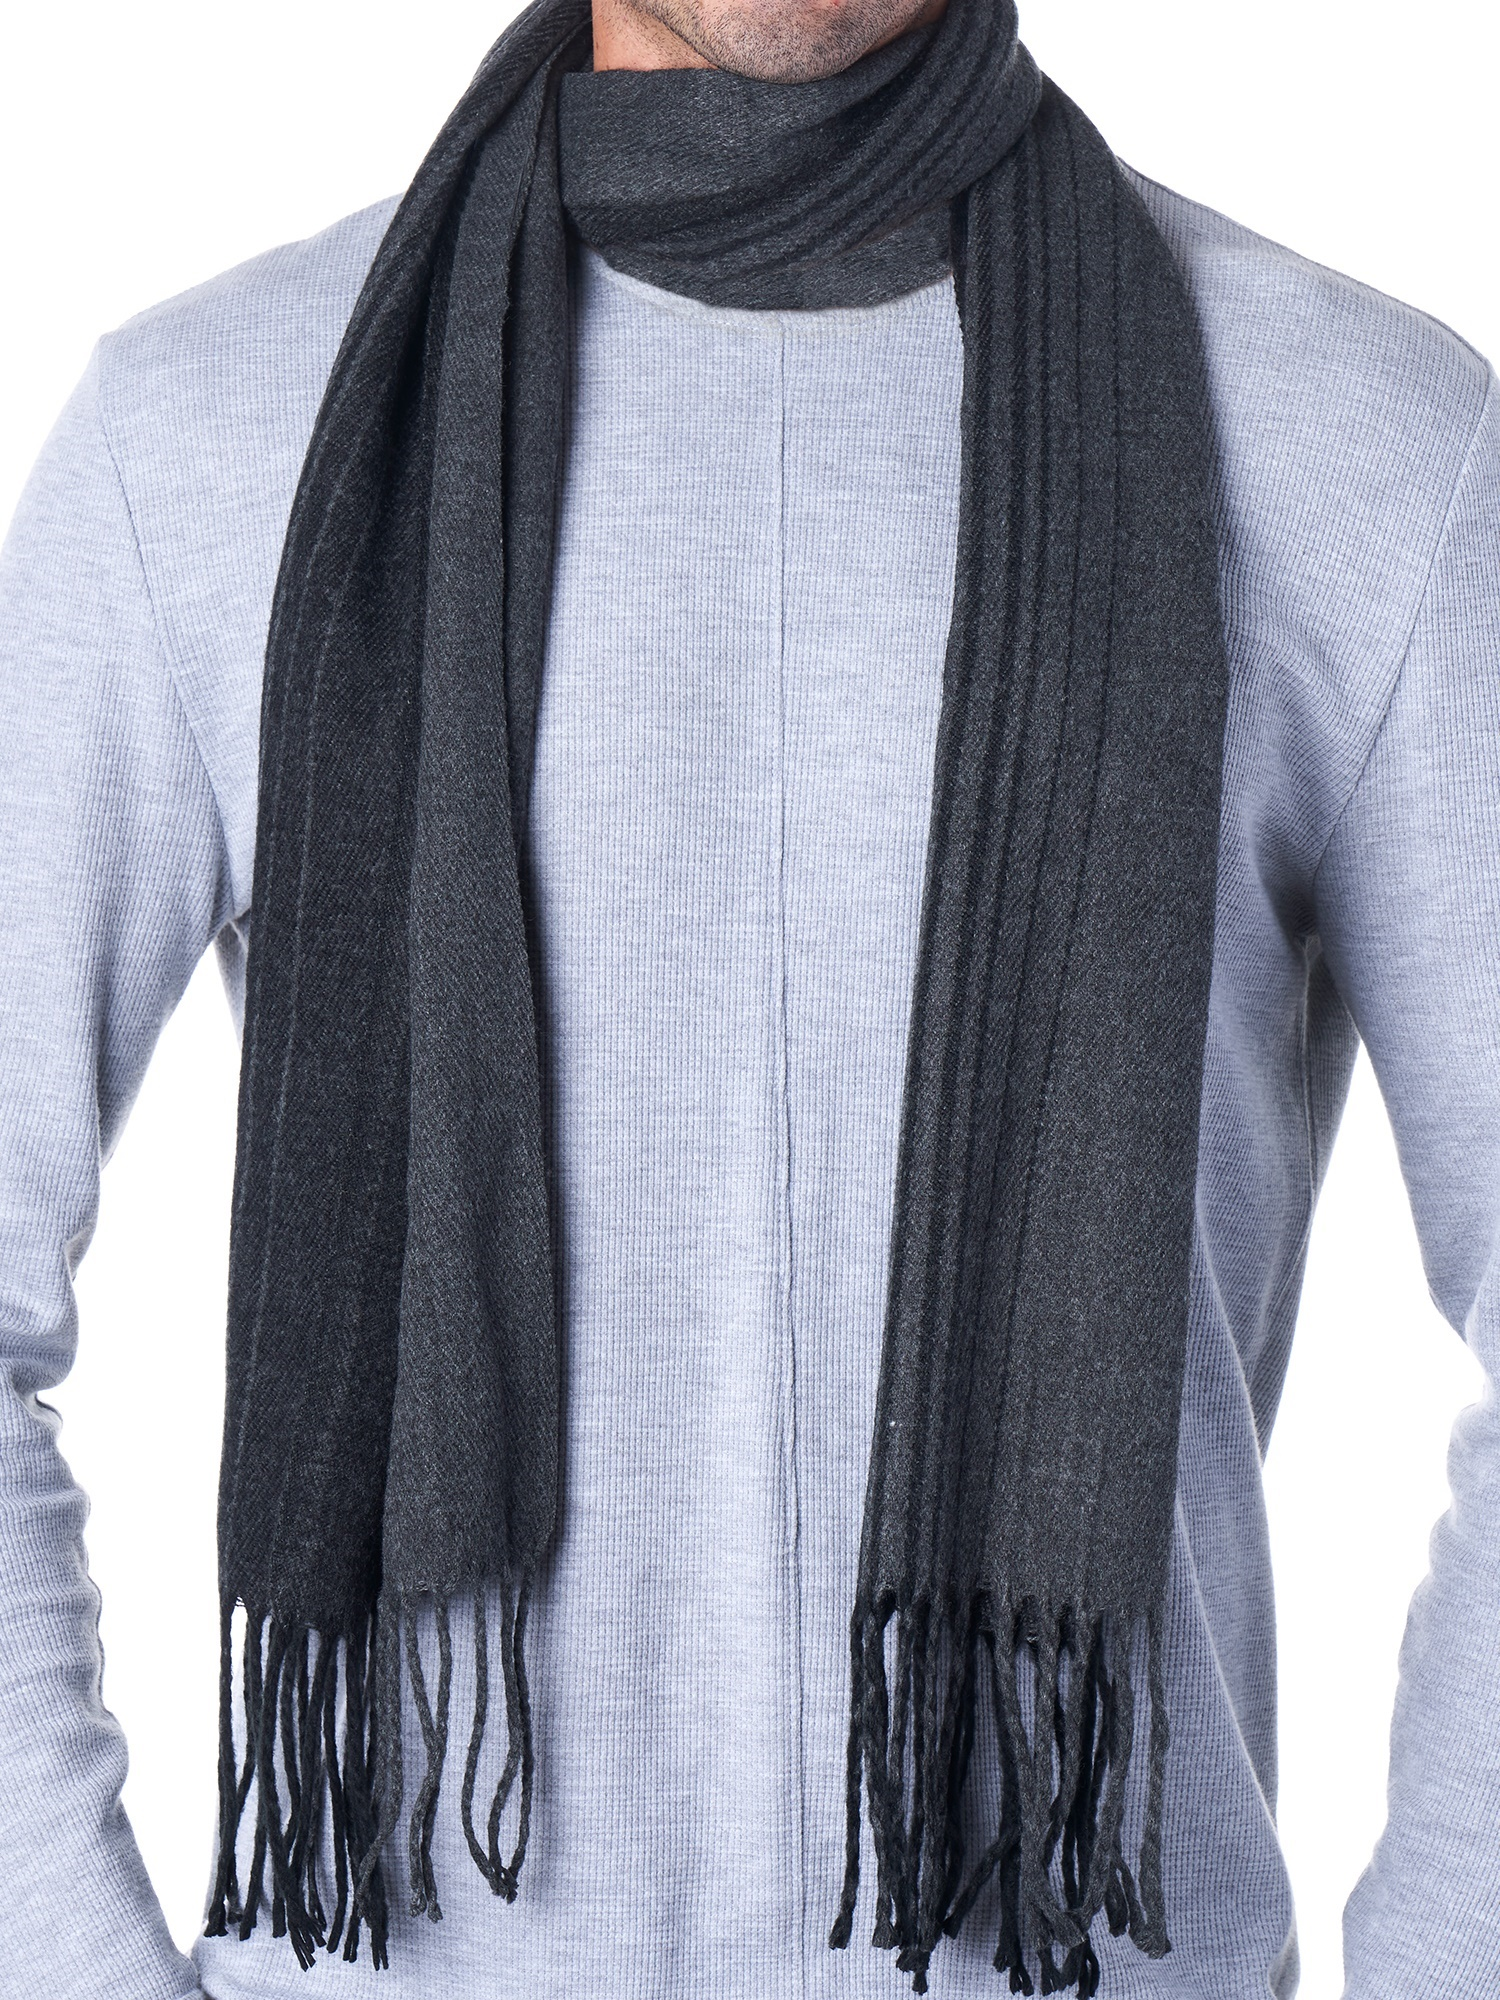 Hammer-Anvil-Mens-Plaid-Striped-Scarf-Womens-Winter-Scarves-Cashmere-Soft-Feel thumbnail 23